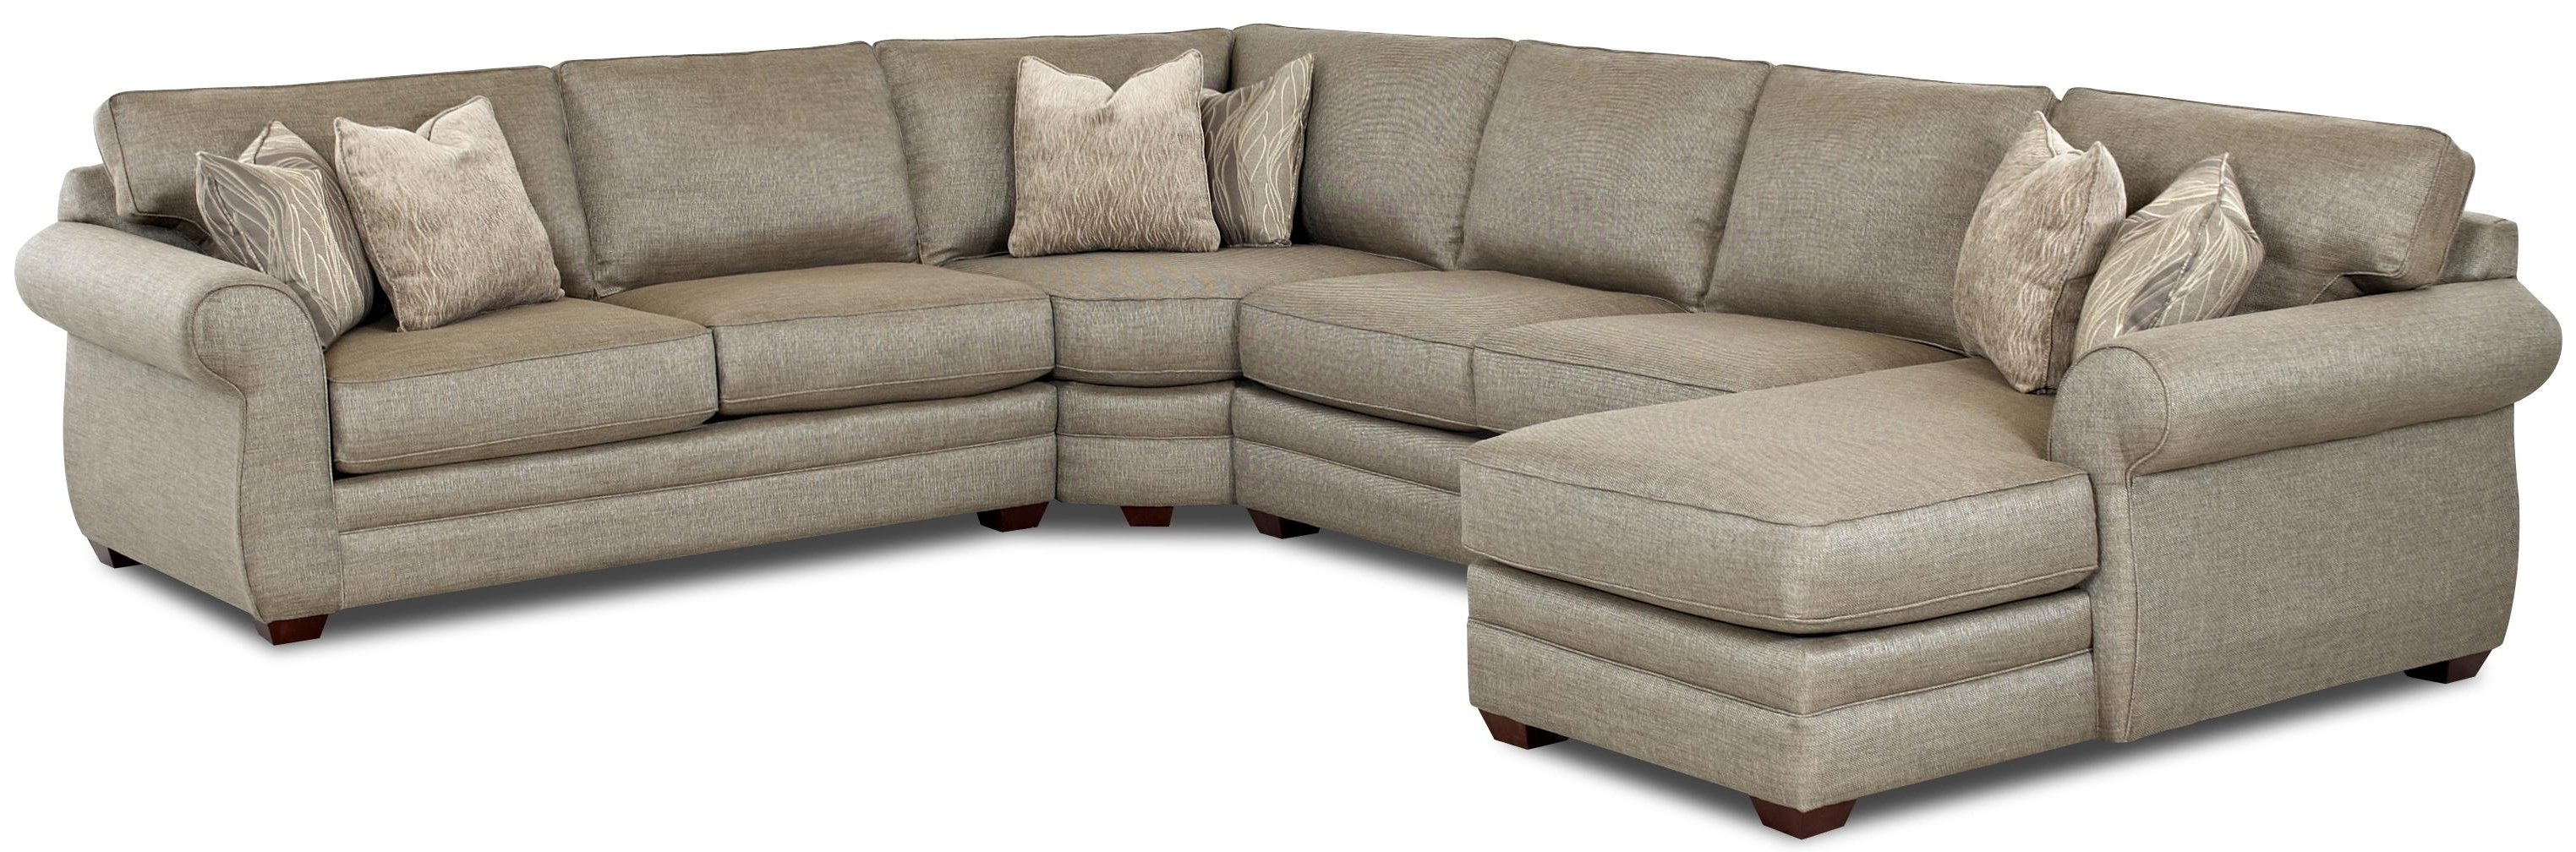 2019 Klaussner Clanton Transitional Sectional Sofa With Left Chaise And Intended For Sleeper Sectional Sofas (View 18 of 20)